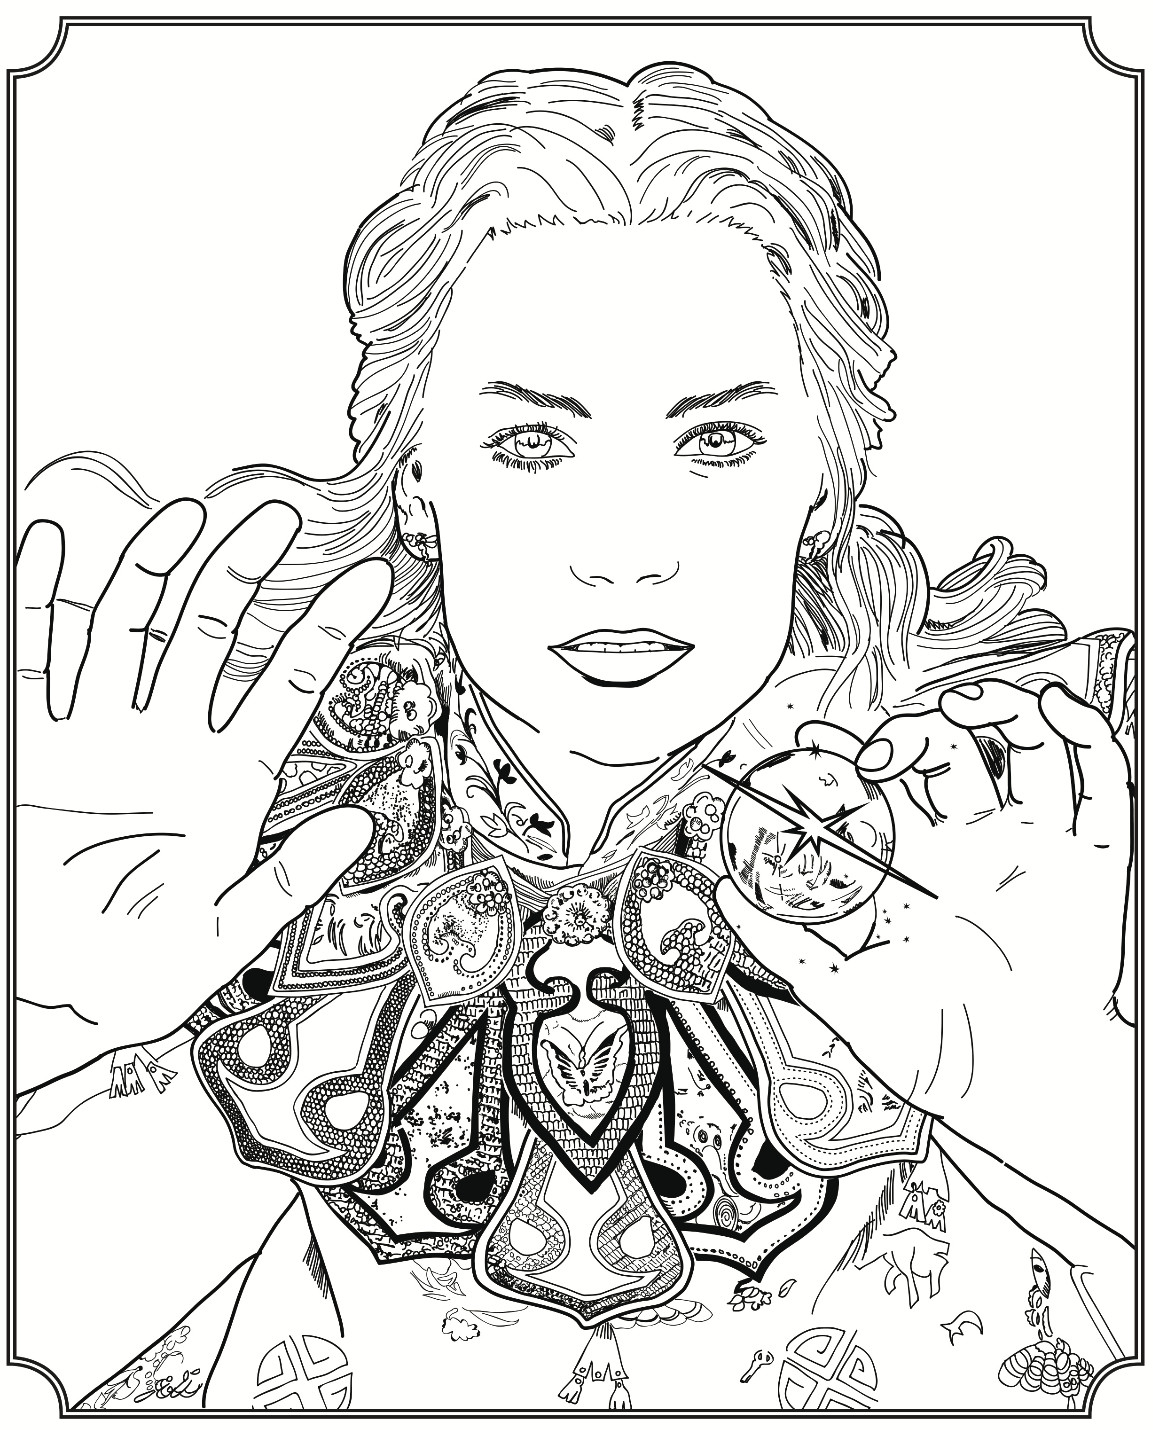 Alice In Wonderland Coloring Pages For Adults  Free Alice in Wonderland Adult Coloring Pages Print them Now